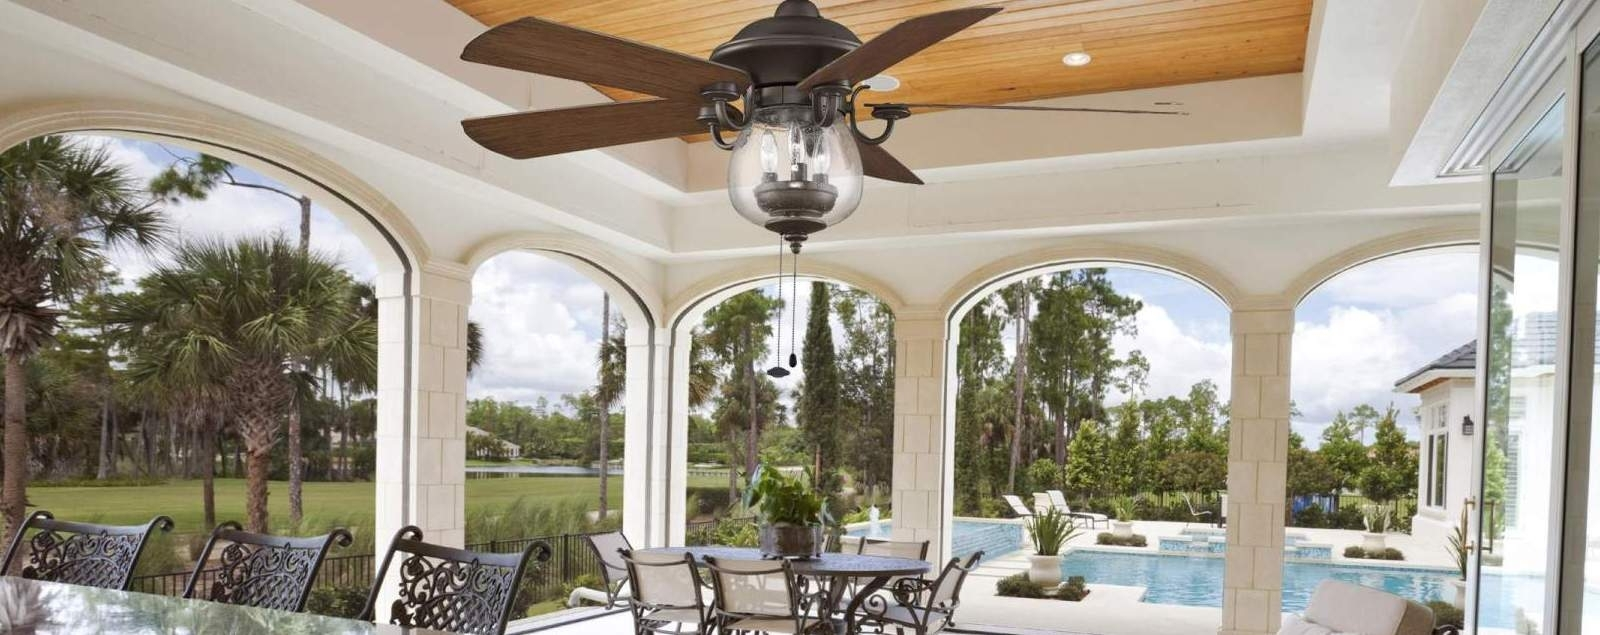 Outdoor Ceiling Fans For Windy Areas In Current Outdoor Ceiling Fans – Shop Wet, Dry, And Damp Rated Outdoor Fans (View 3 of 20)